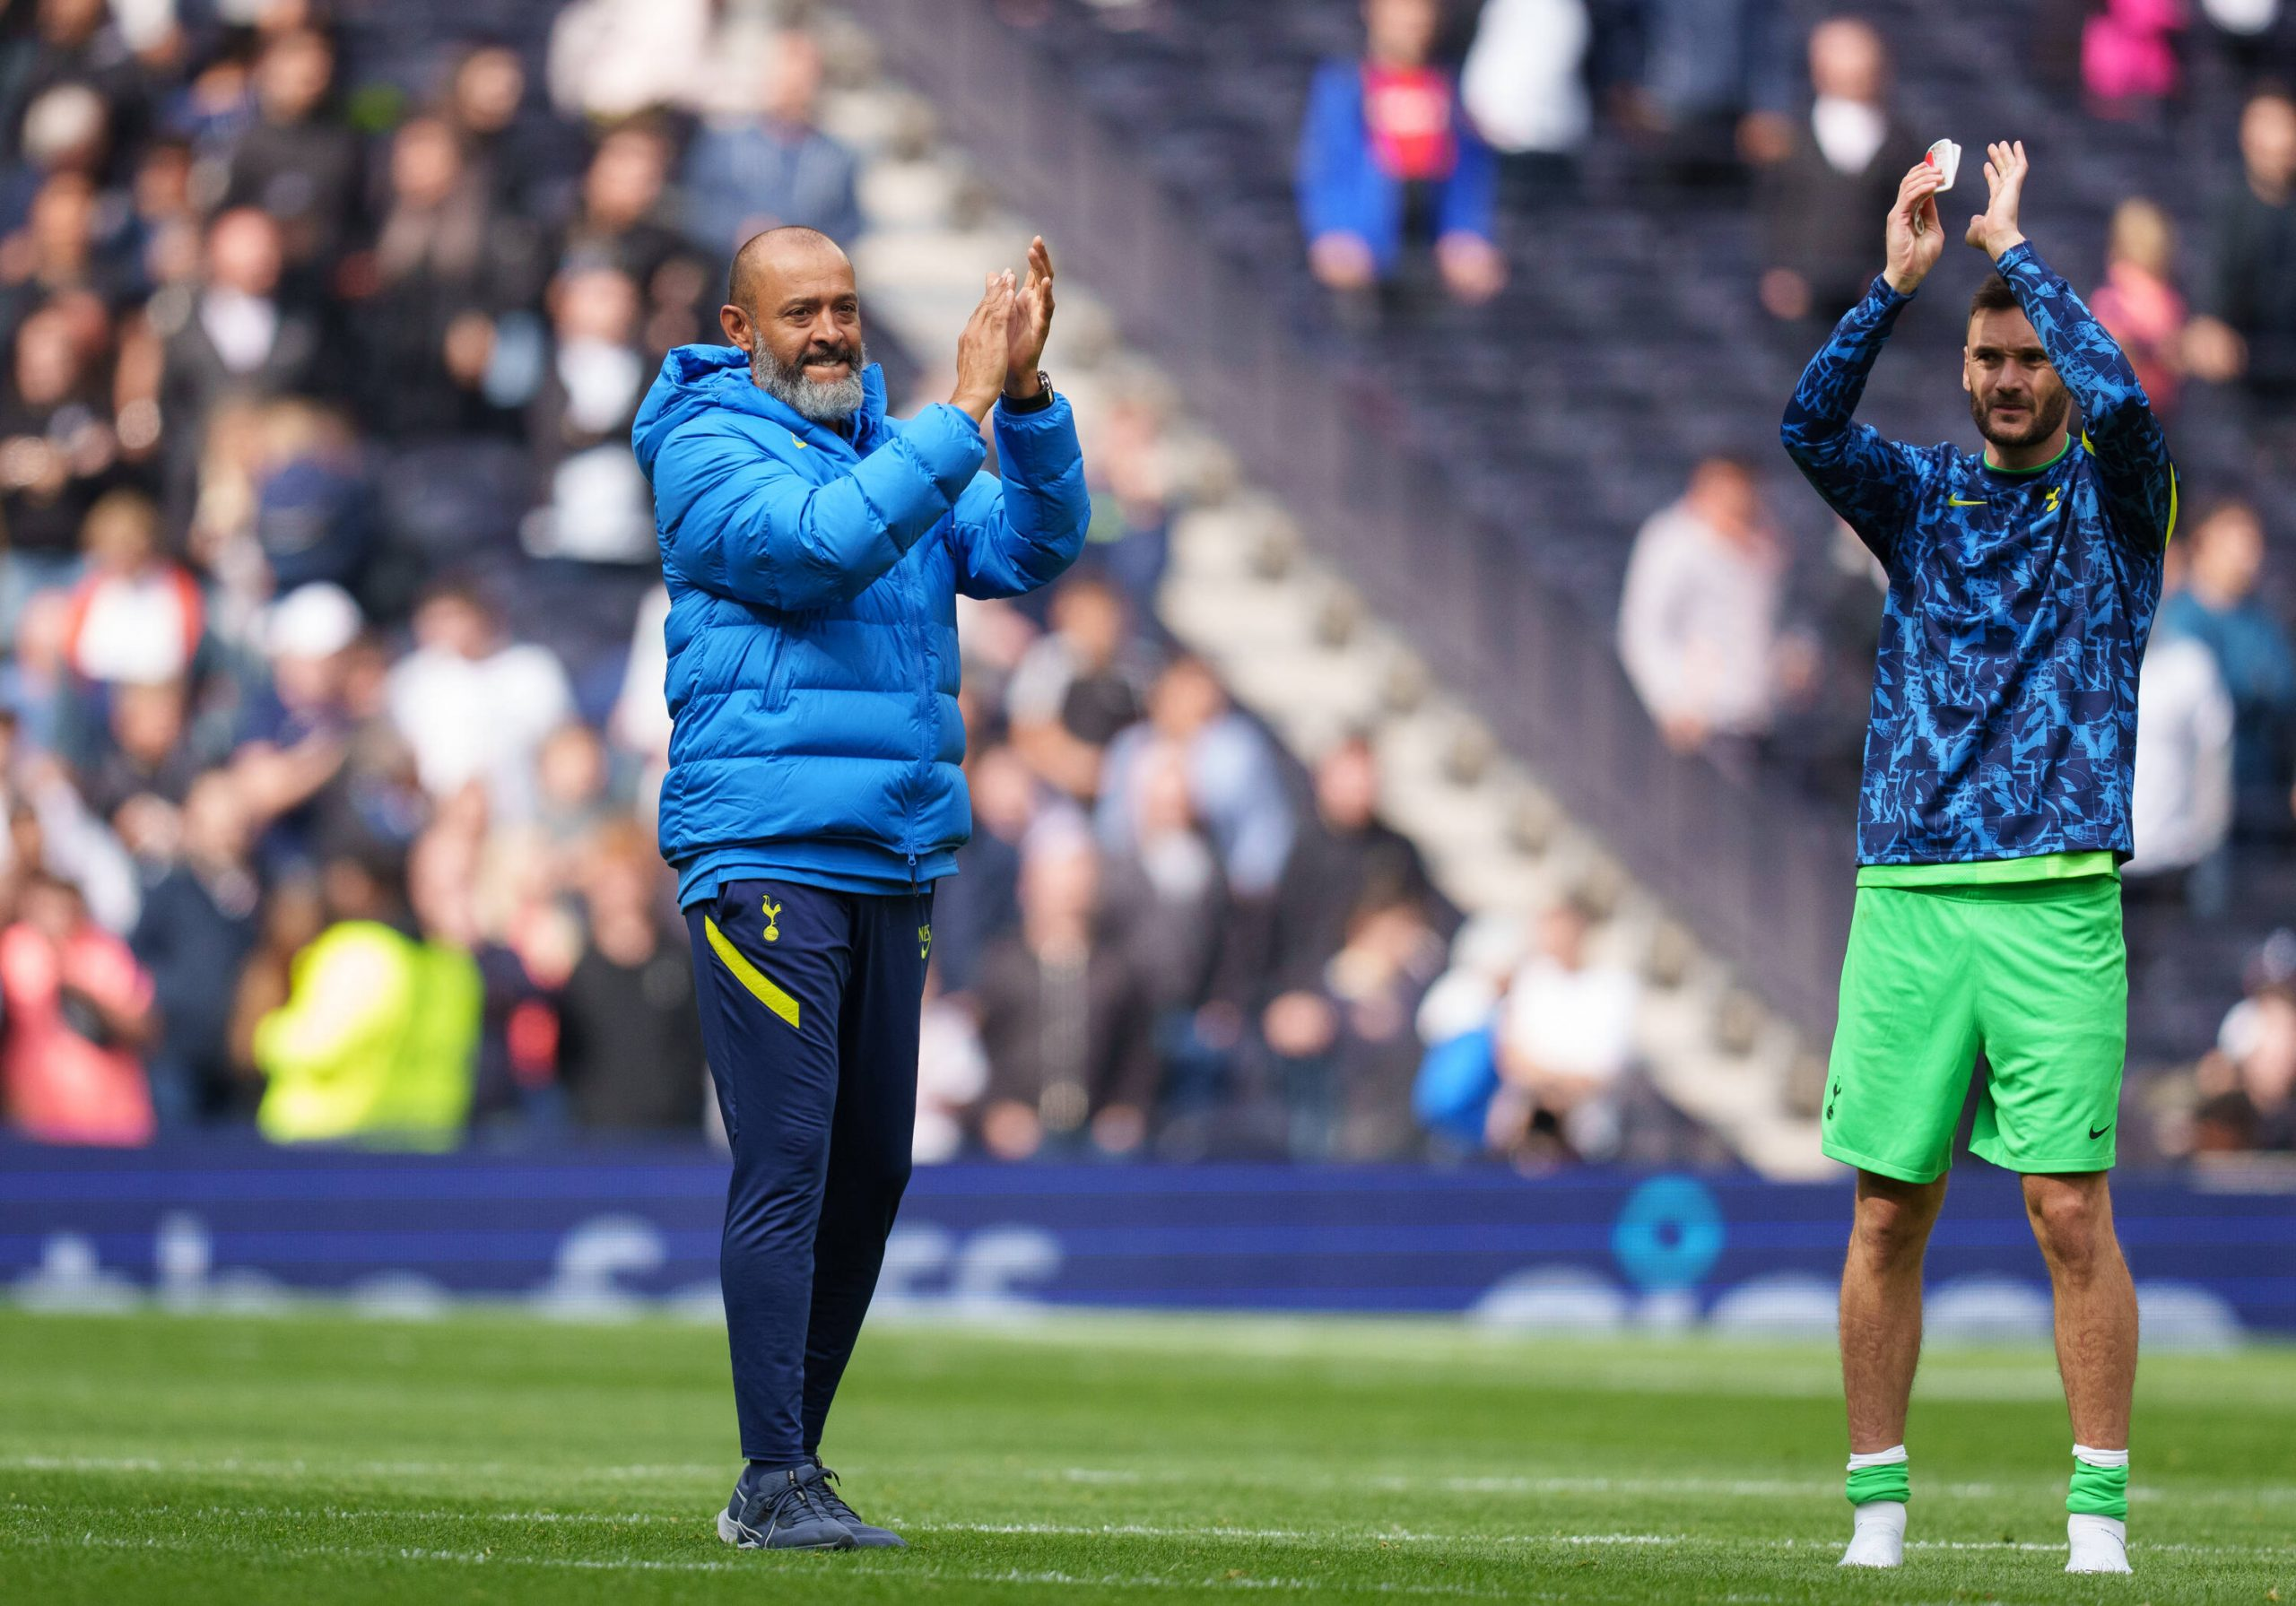 Tottenham Hotspur manager, Nuno Espirito Santo has revealed that he overlooks the guidance on heading the ball in training.